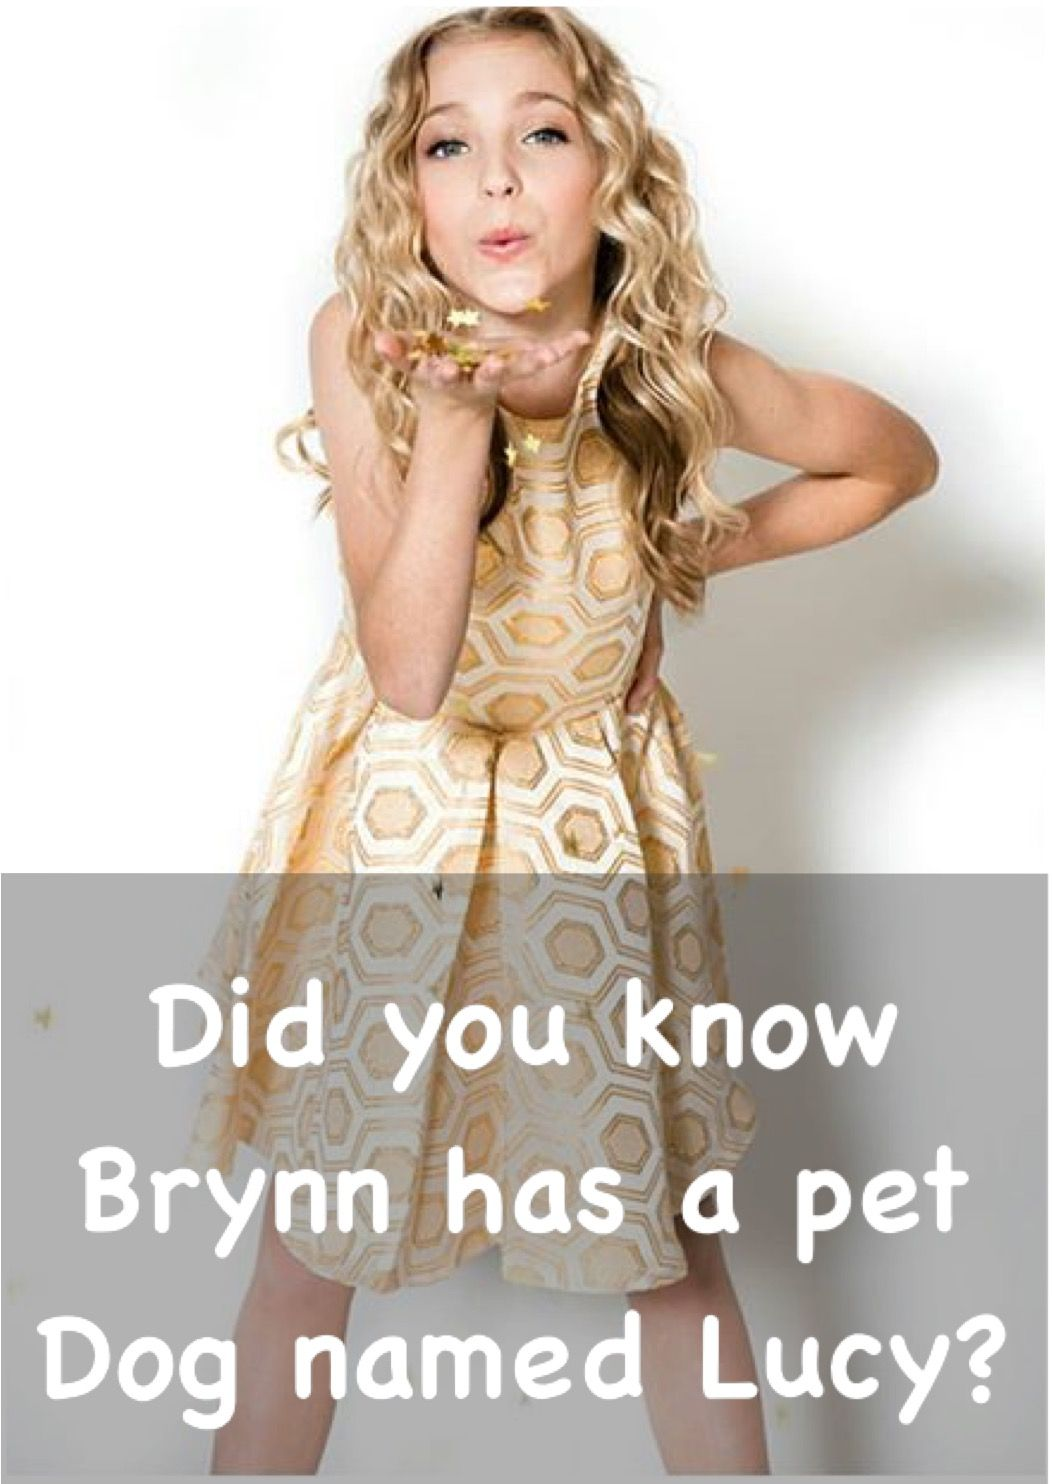 Here's another fact I hope u enjoy it!!